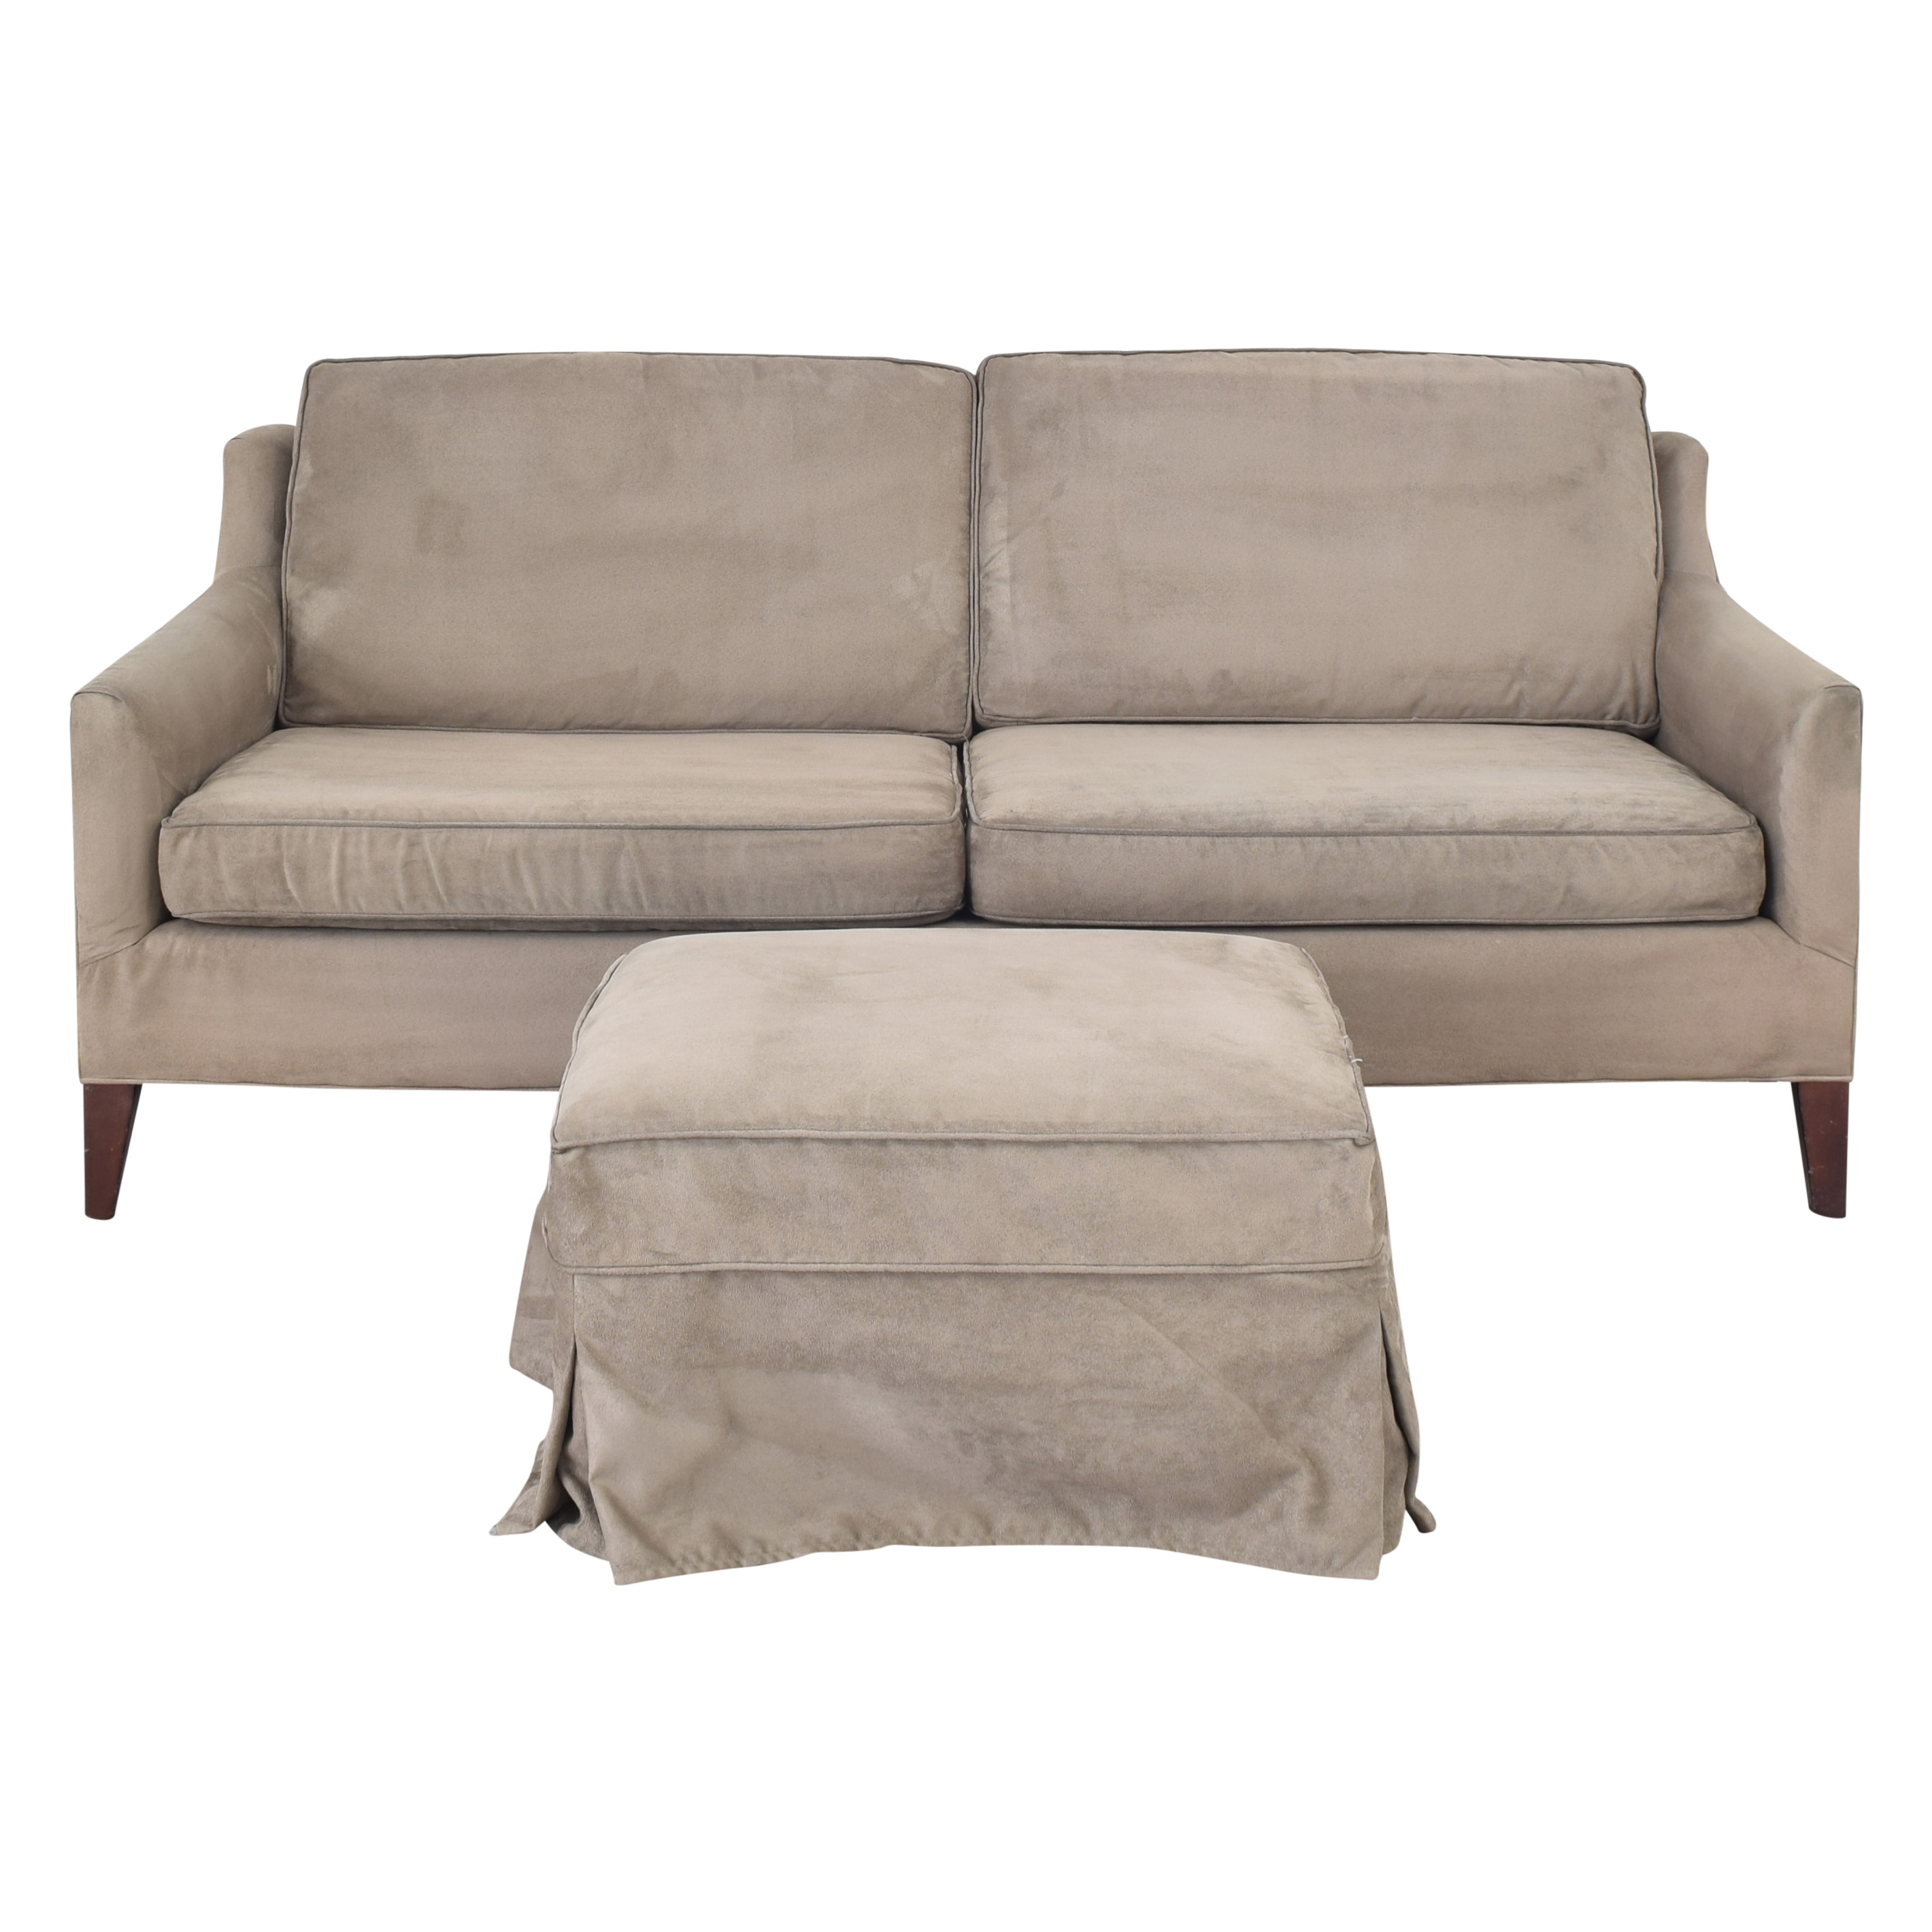 Mitchell Gold + Bob Williams Mitchell Gold + Bob Williams Taylor Apartment Sofa with Ottoman second hand